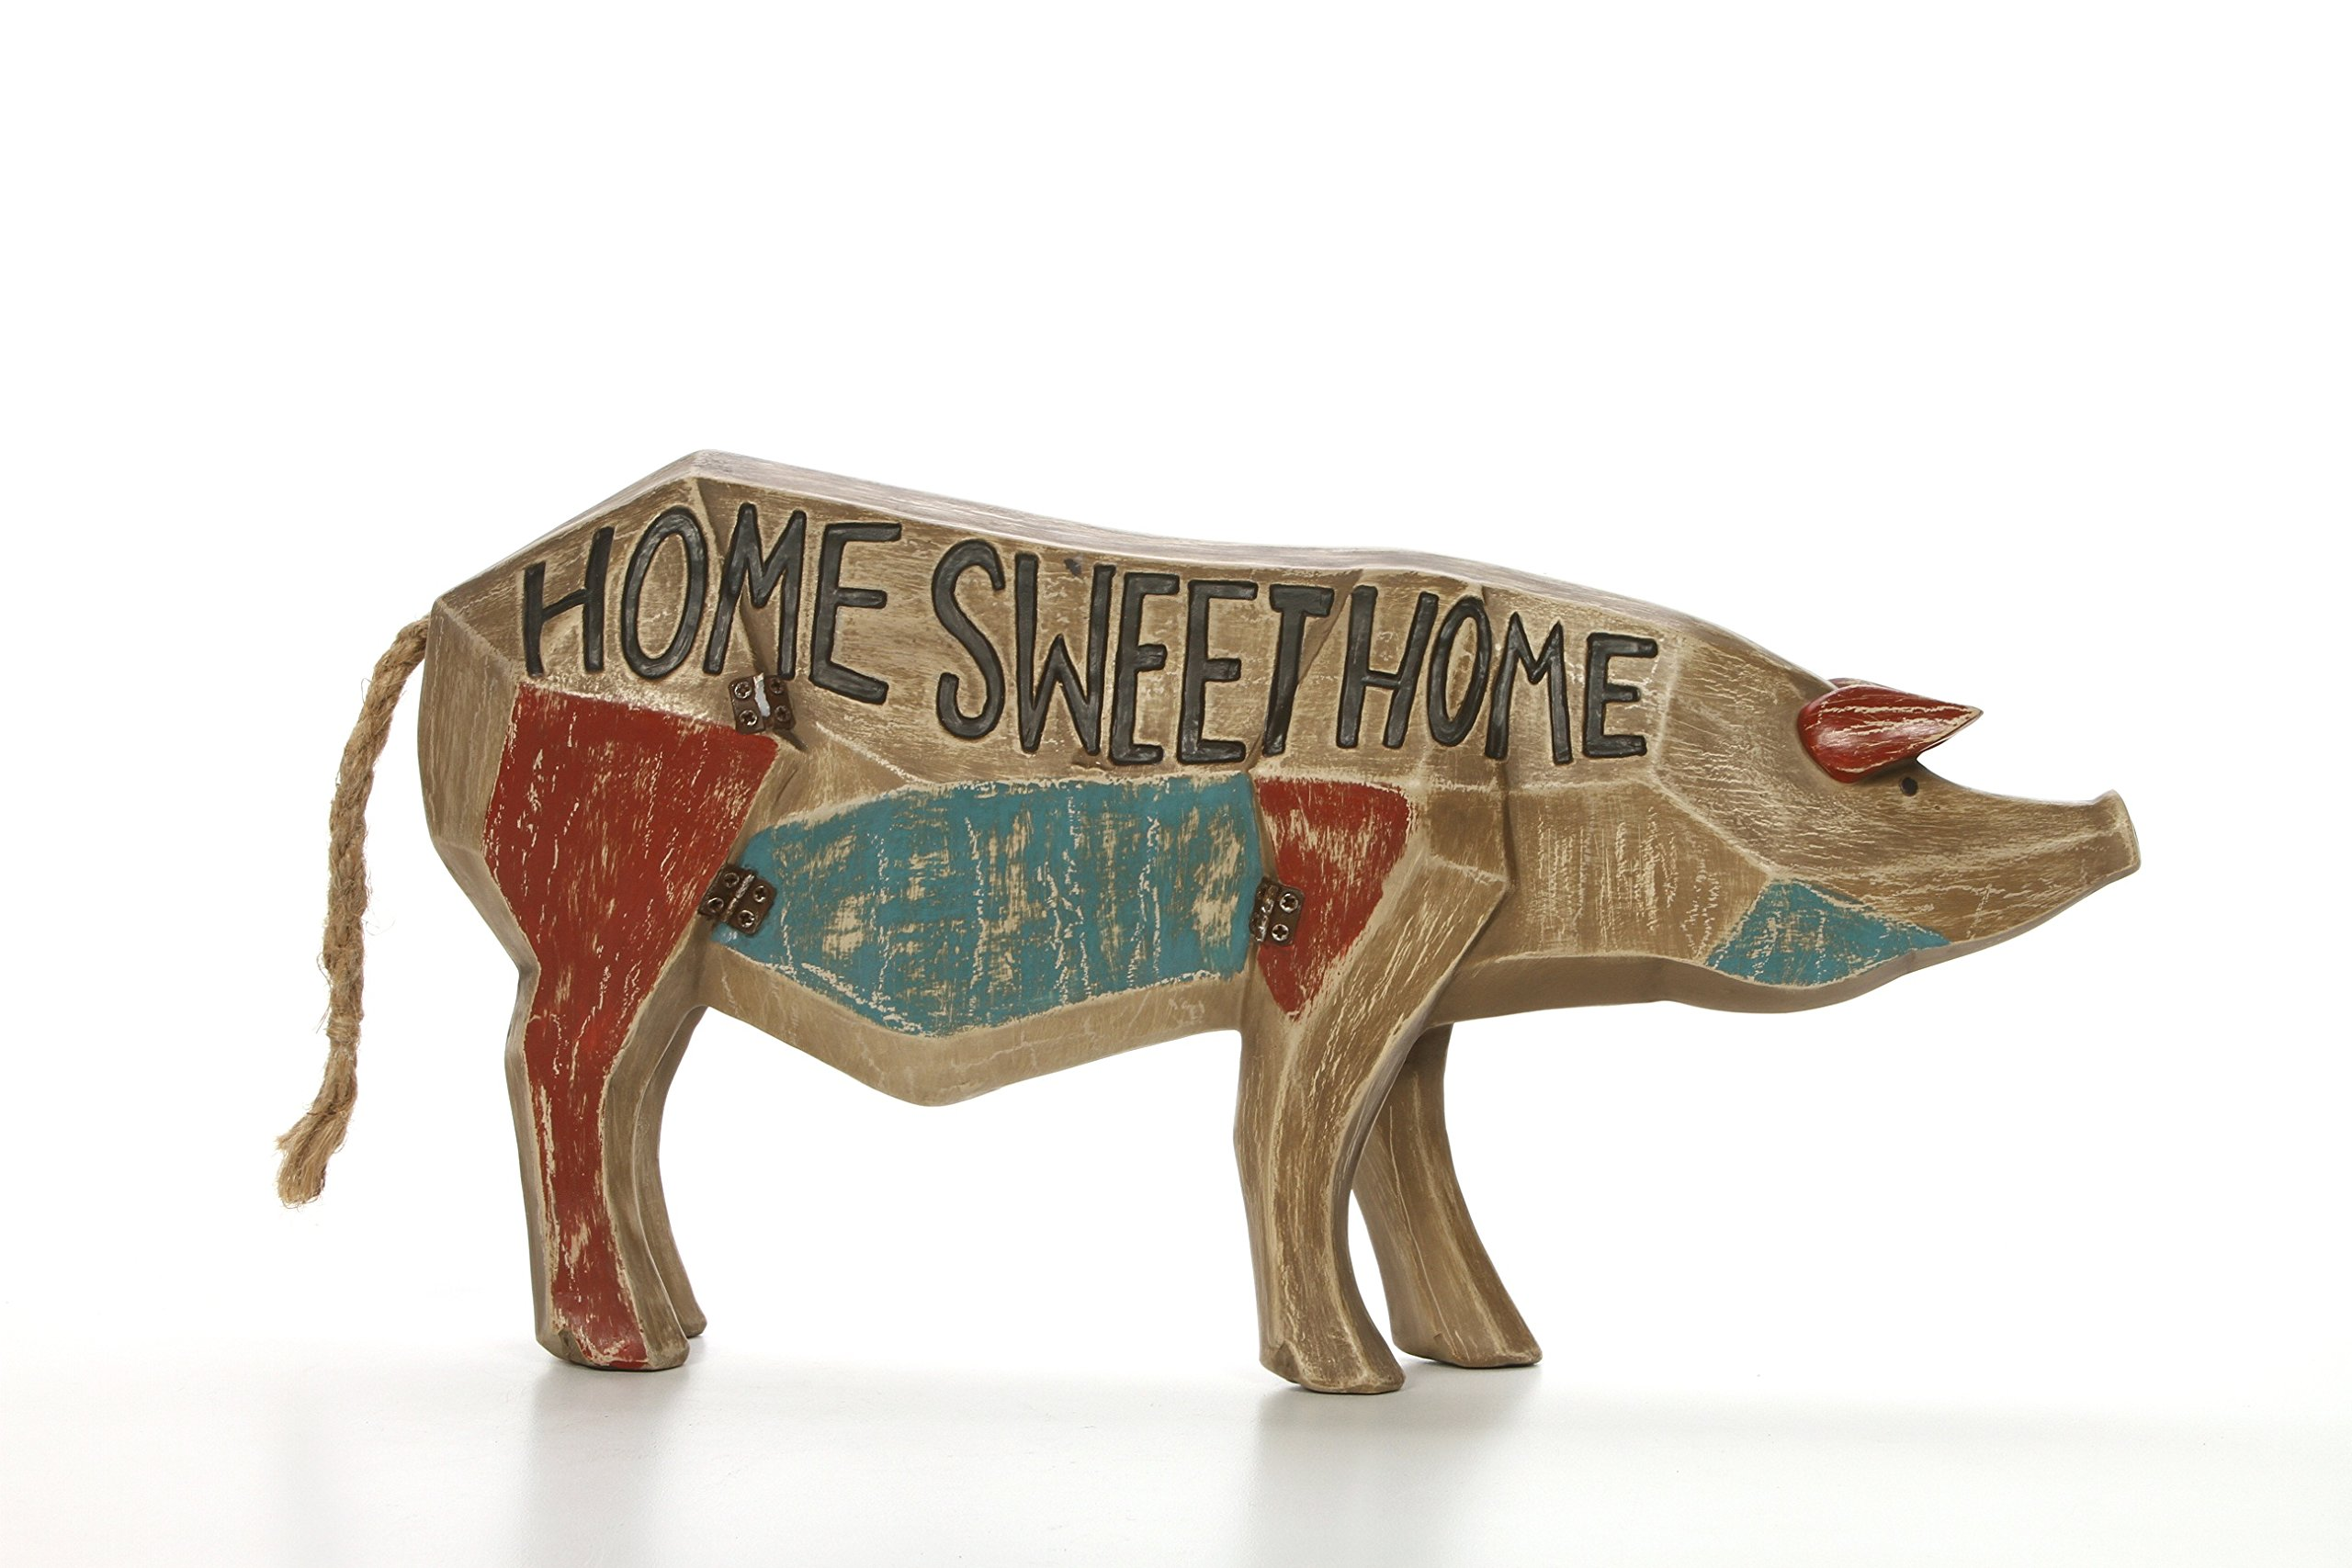 Hosley 14.4'' Long, Decorative Tabletop Sign - Home Sweet Home, Pig. Ideal Gift for Wedding, Home, Party Favor, Spa, Reiki, Meditation, Bathroom Settings O9